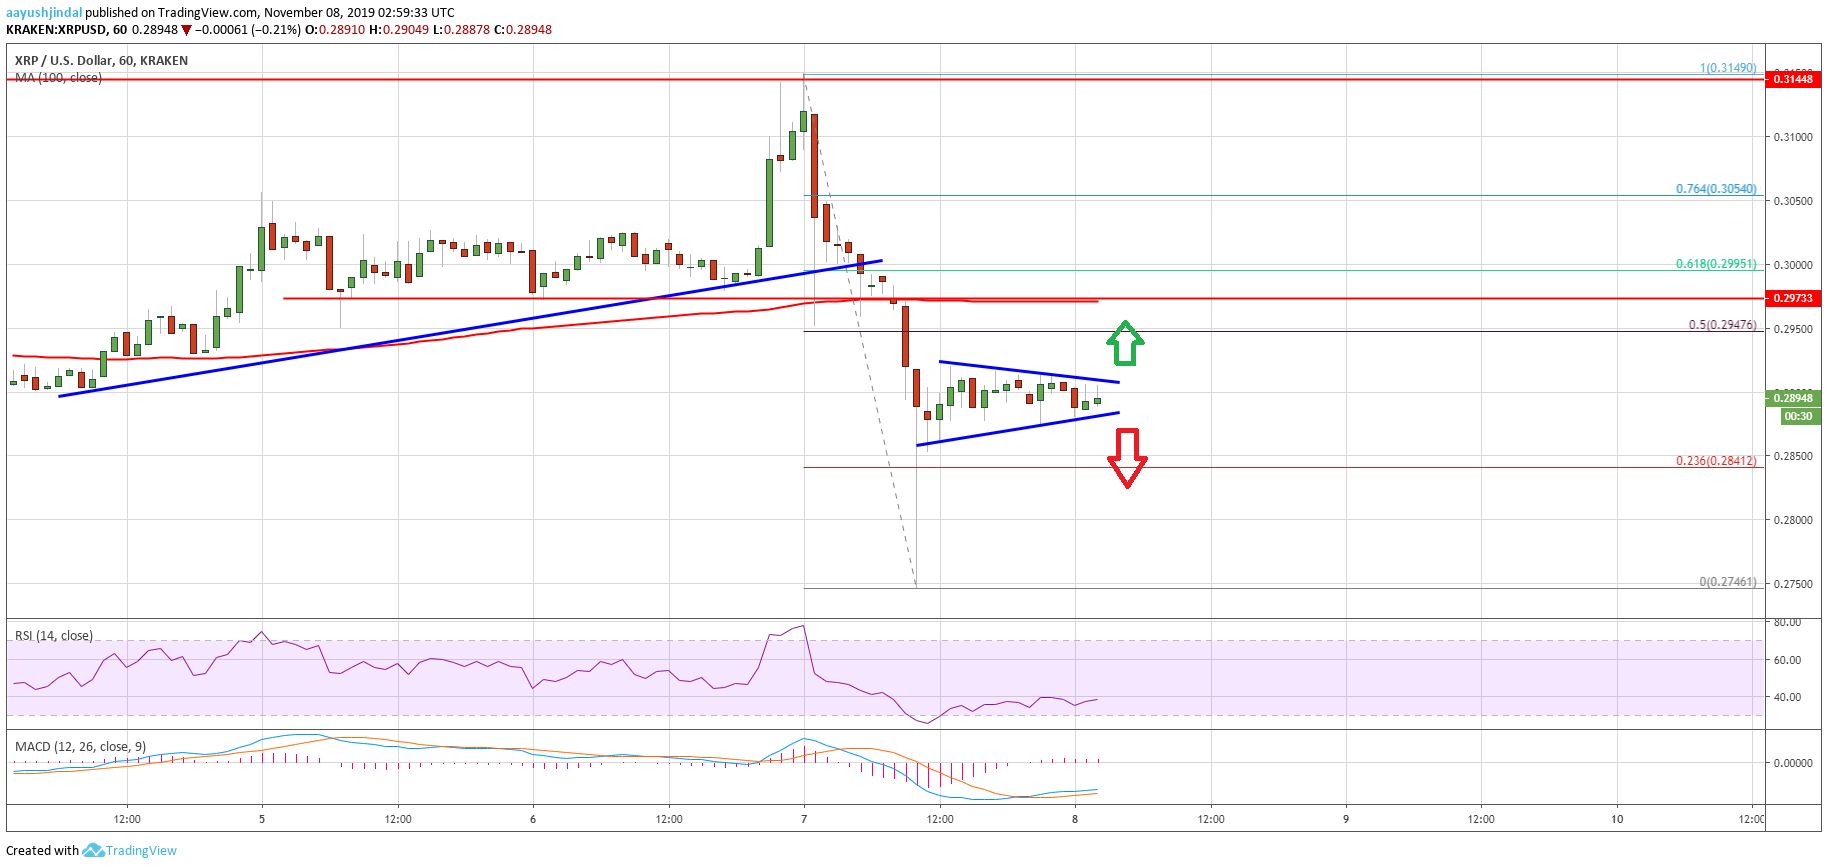 Ripple (XRP) Price Turns Short Term Bearish, $0.2980 Presents Resistance